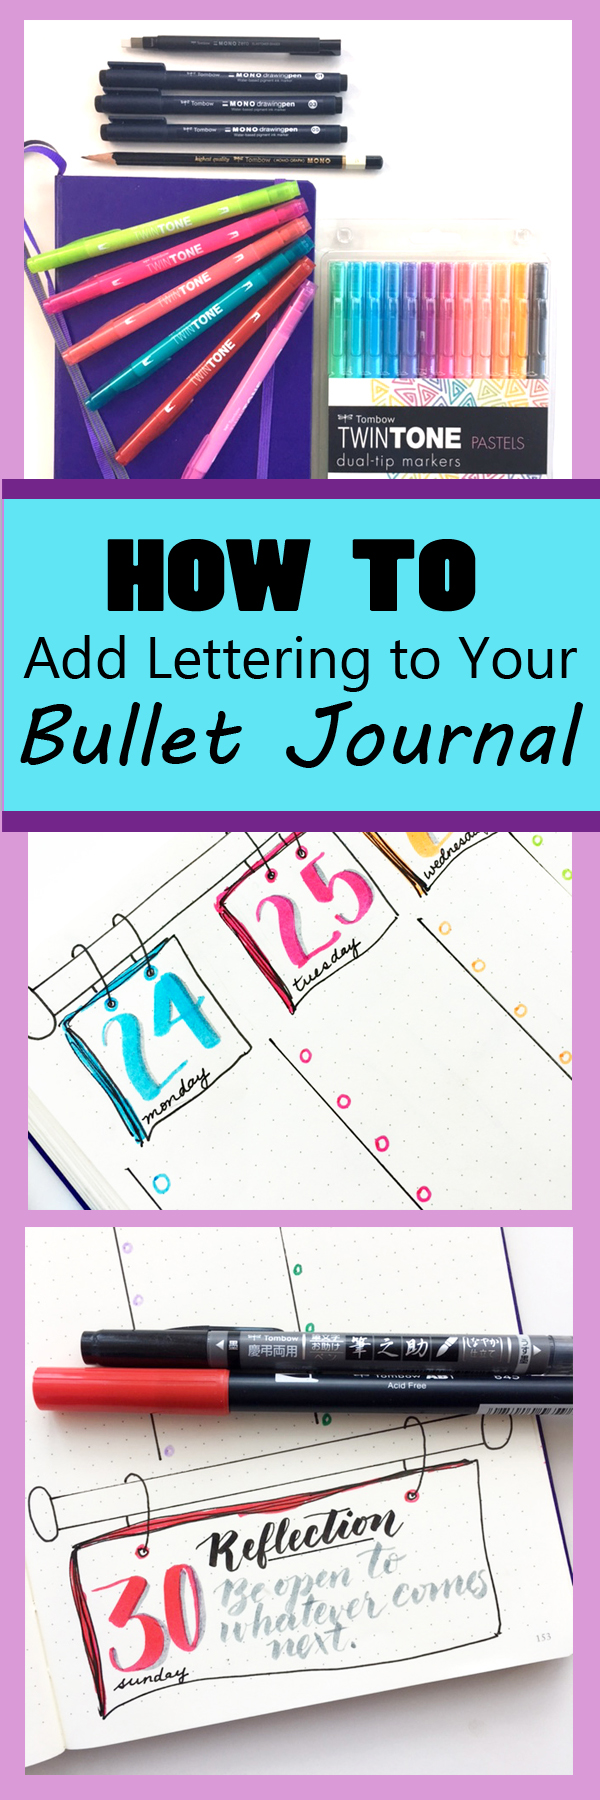 Awesome BUJO ideas and video tutorials for lettering with Tombow pens! www.kellycreates.ca